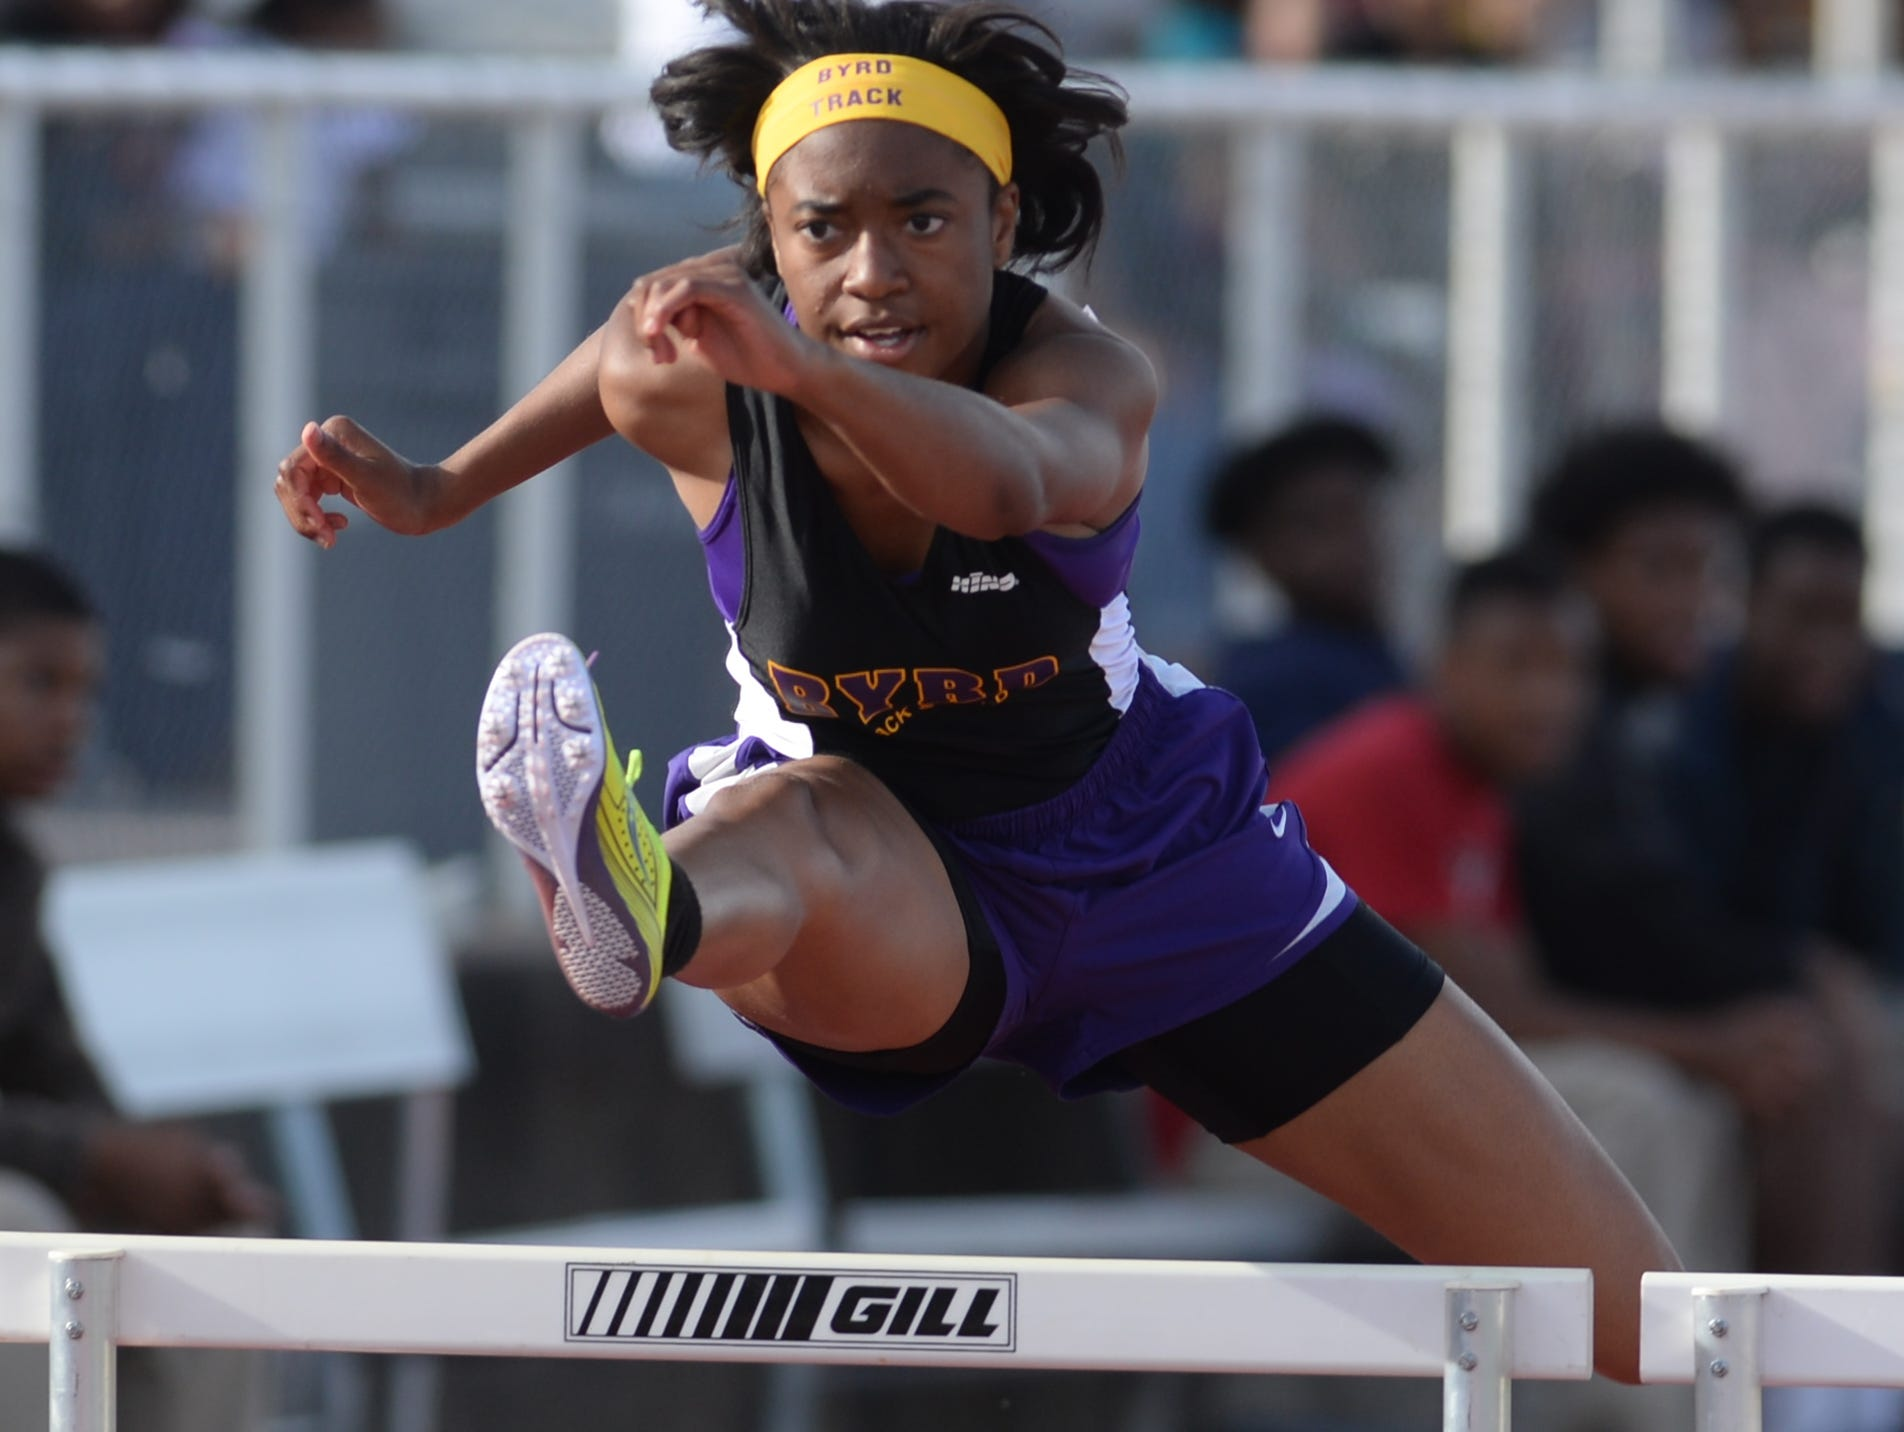 Byrd's Naterria Davis takes the lead during her heat in the 100M hurdles at the Shreveport relays.